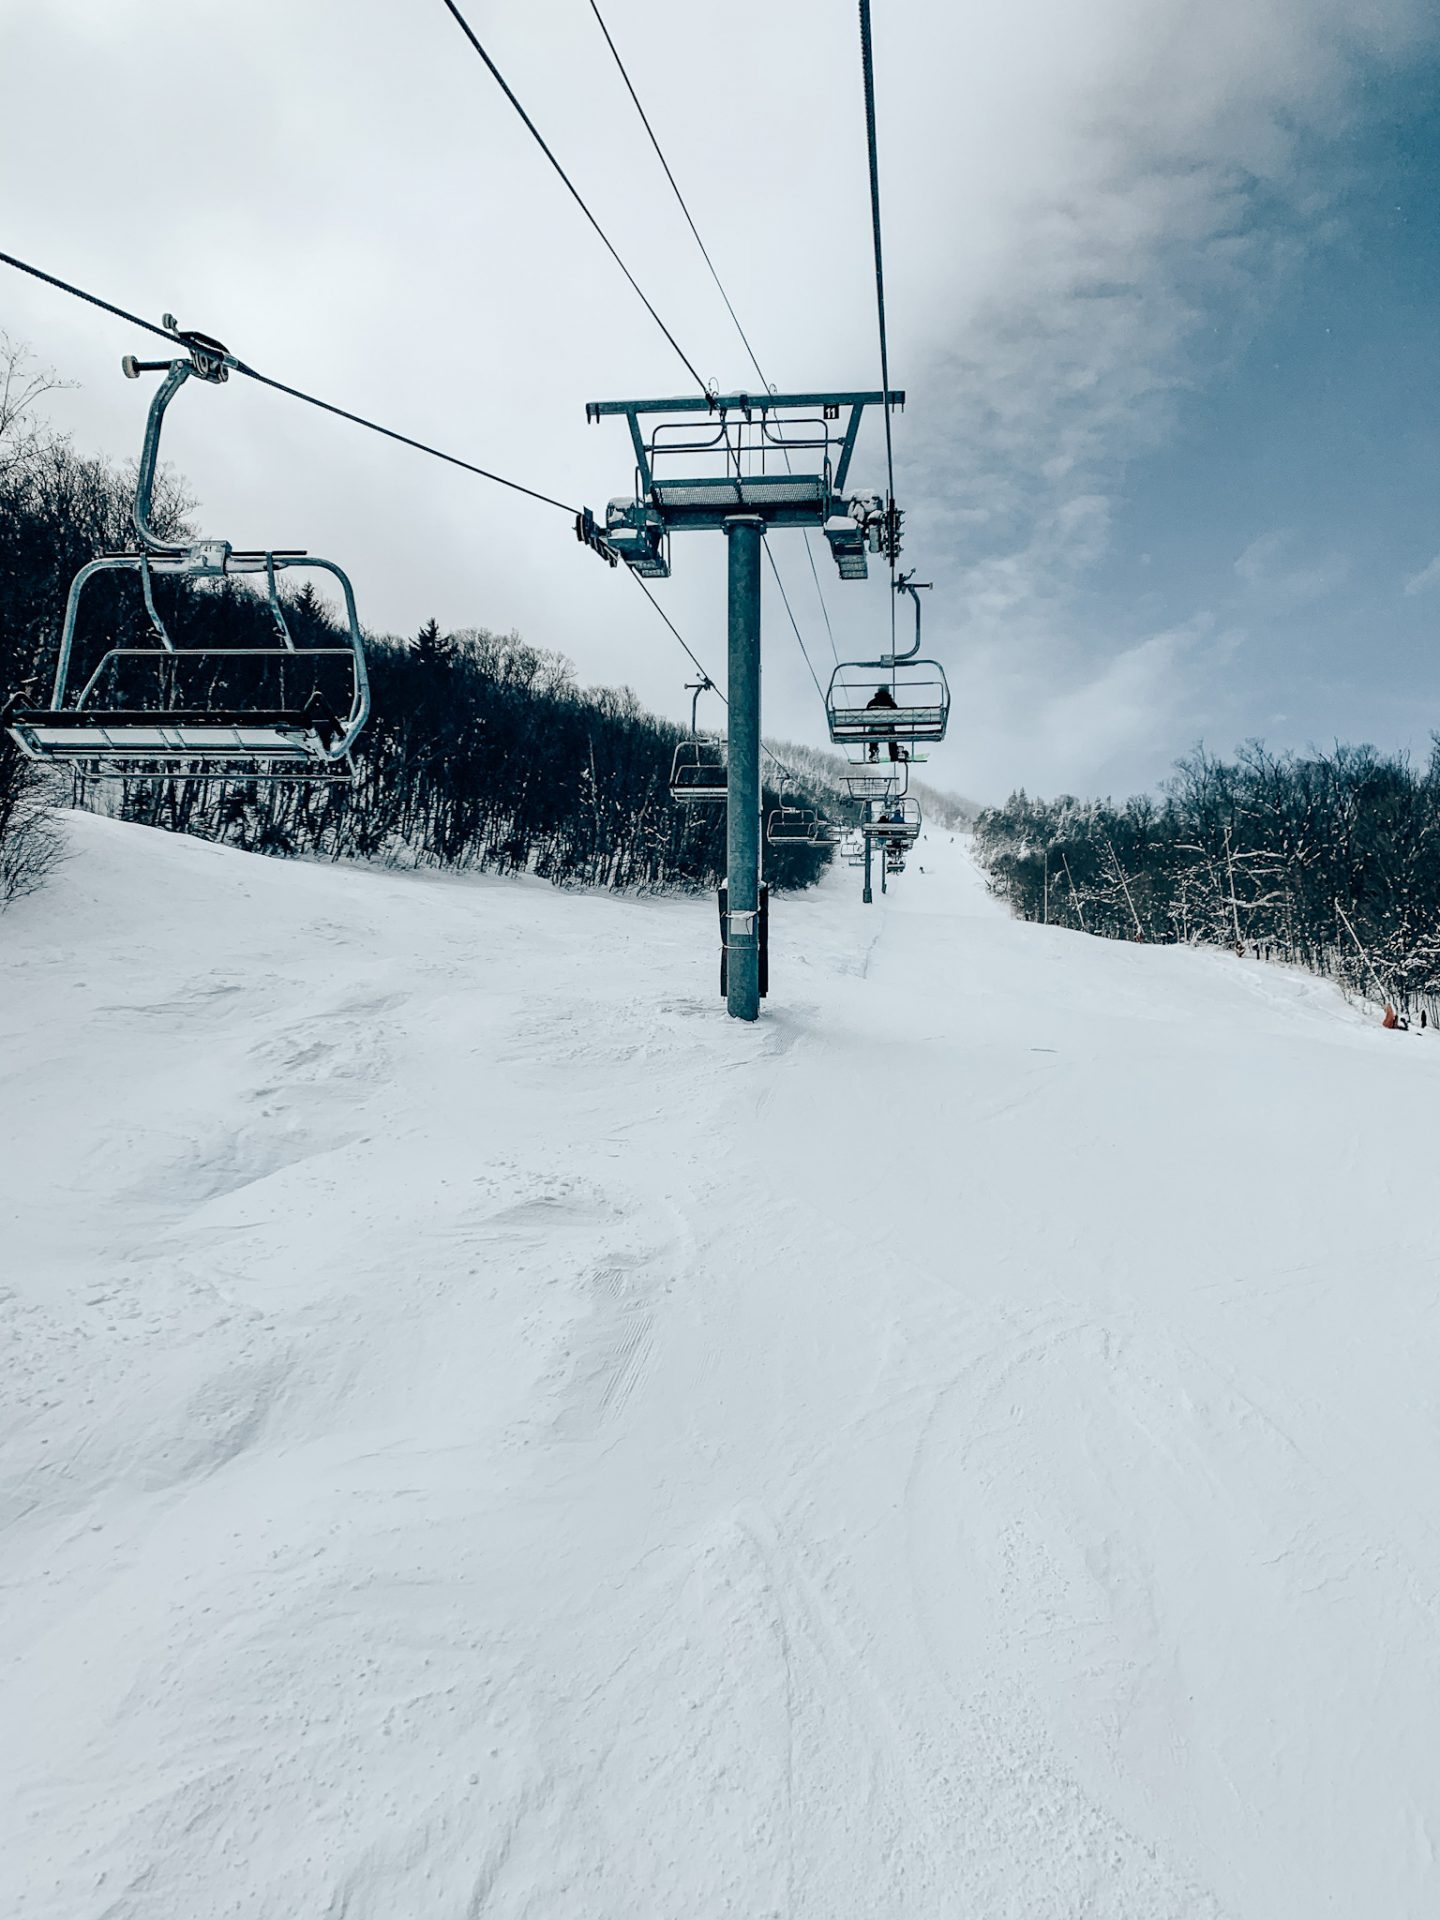 Photo of a chair lift at a ski mountain